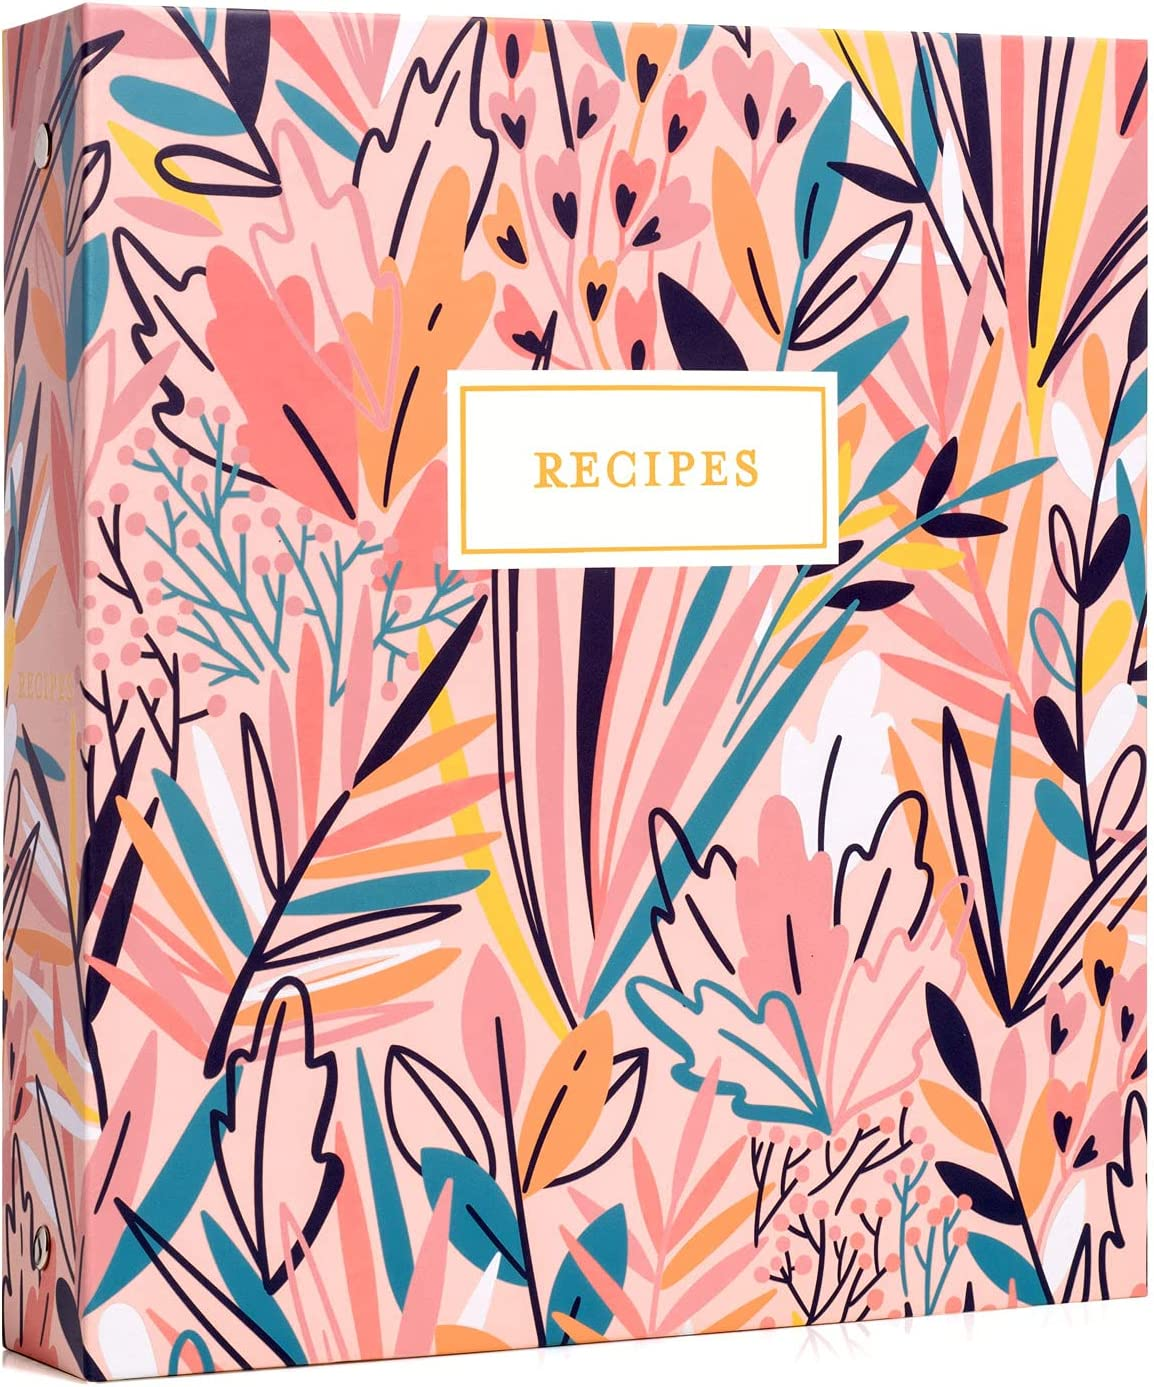 Jot & Mark Recipe Organizer 3 Ring Binder Set (Exotic Floral) | 50 Recipe Cards 4x6, Rainbow Full Page Dividers and Plastic Page Protectors